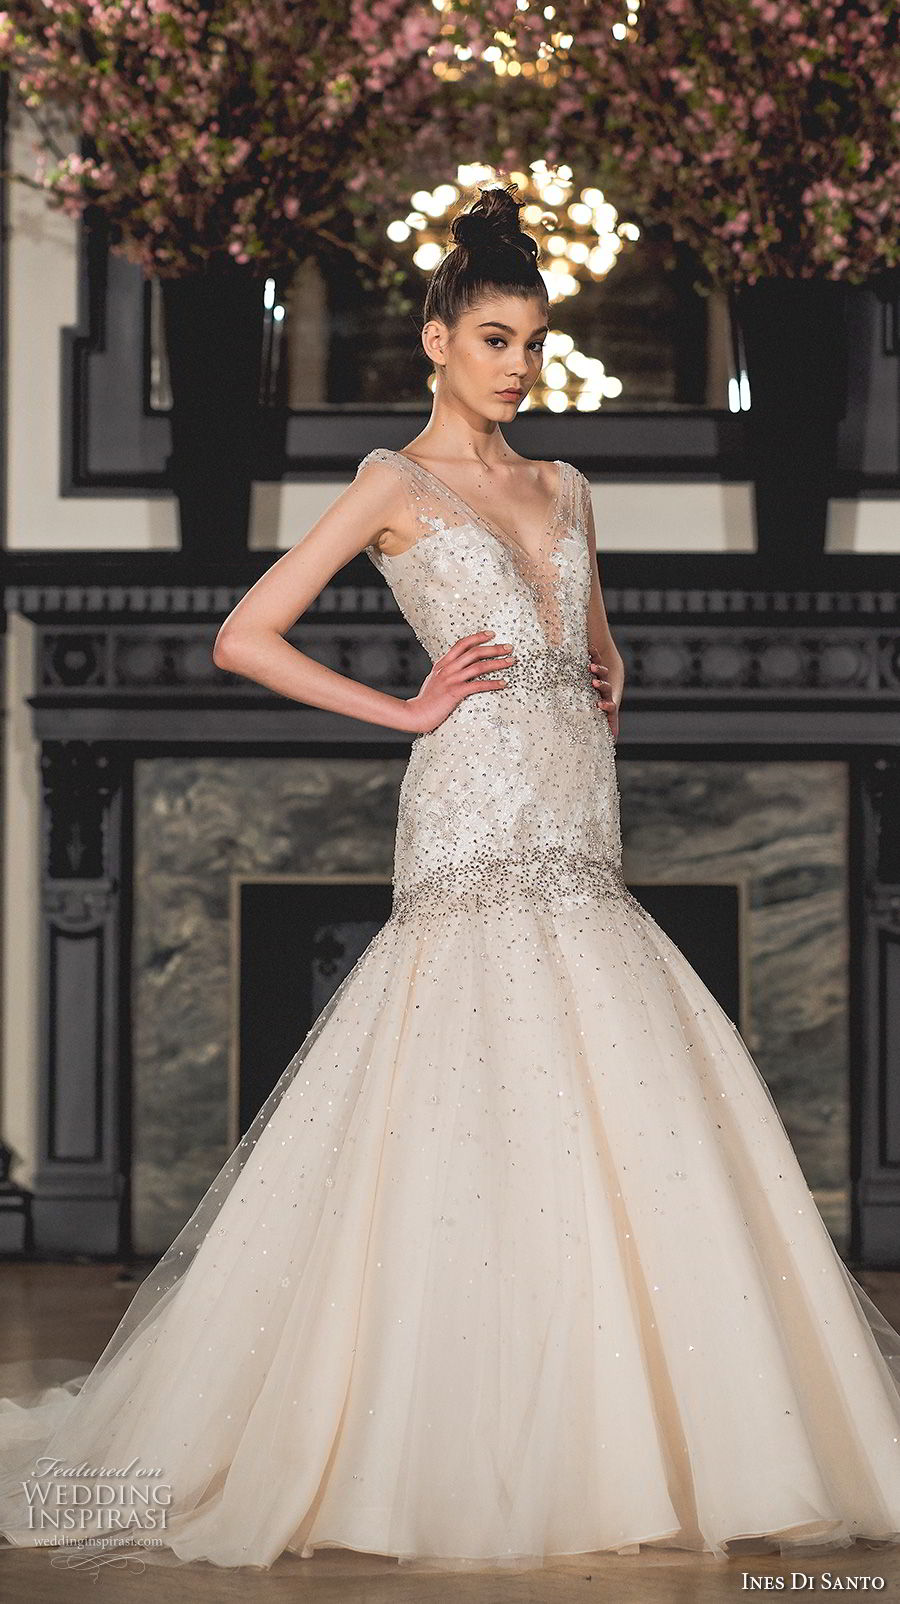 ines di santo spring 2019 bridal sleeveless sheer strap deep plunging sweetheart neckline heavily embellished bodice mermaid wedding dress chapel train (12) mv